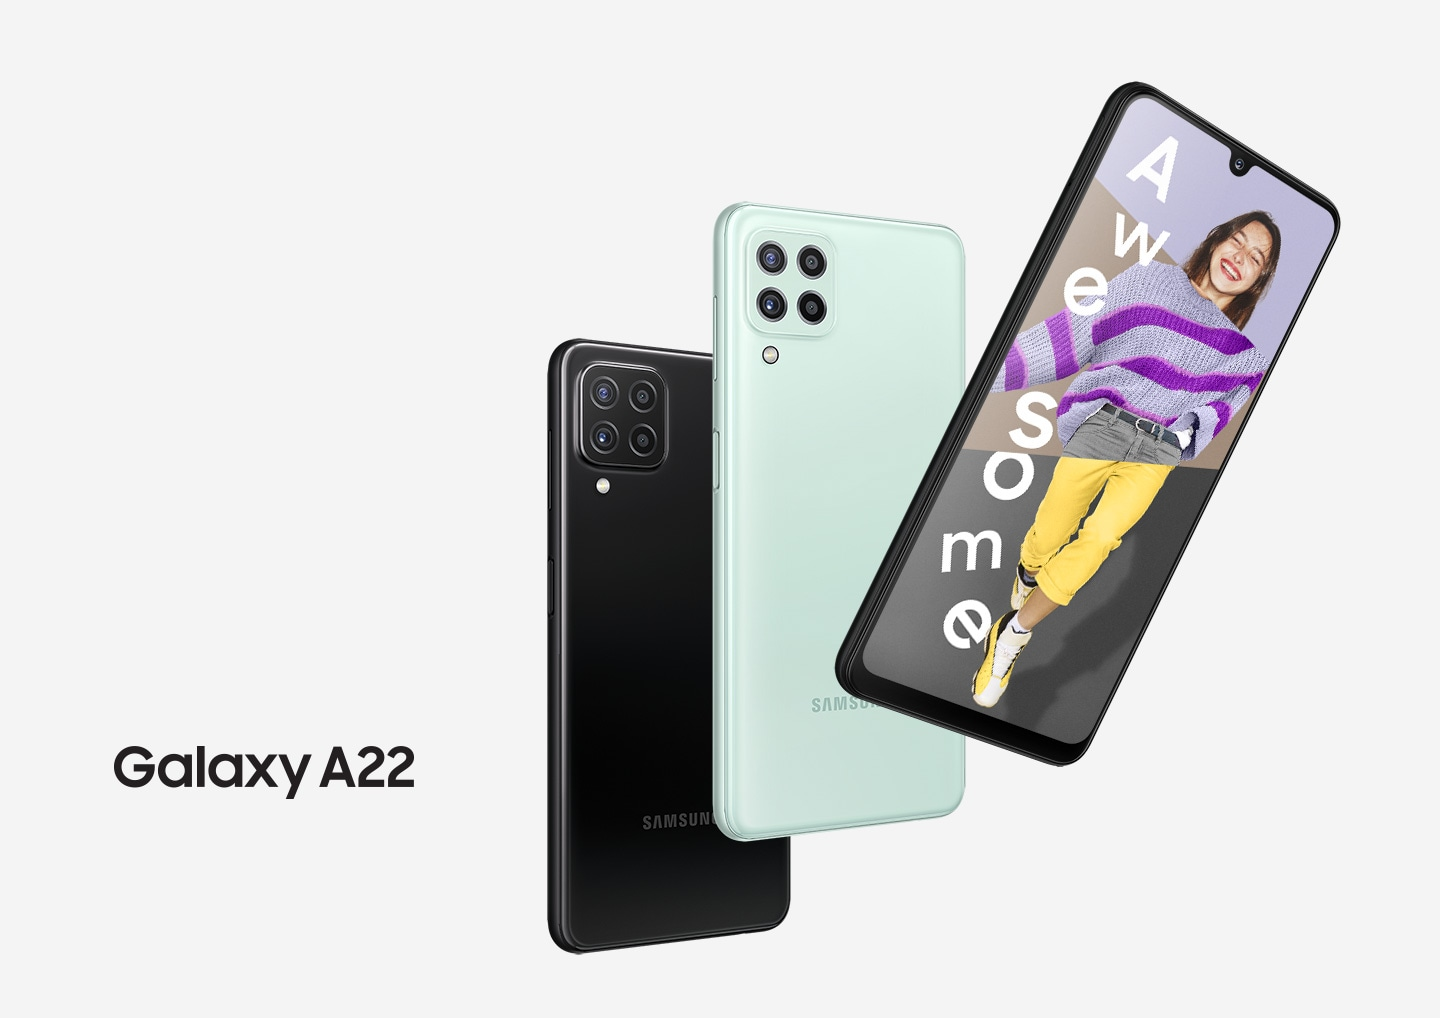 Three Galaxy A22 phones in a row. Two seen from the rear to show the rear camera and the colors black and mint. One seen from the front, and onscreen is a collage of a woman's head, a purple striped sweater and yellow pants with the word Awesome.